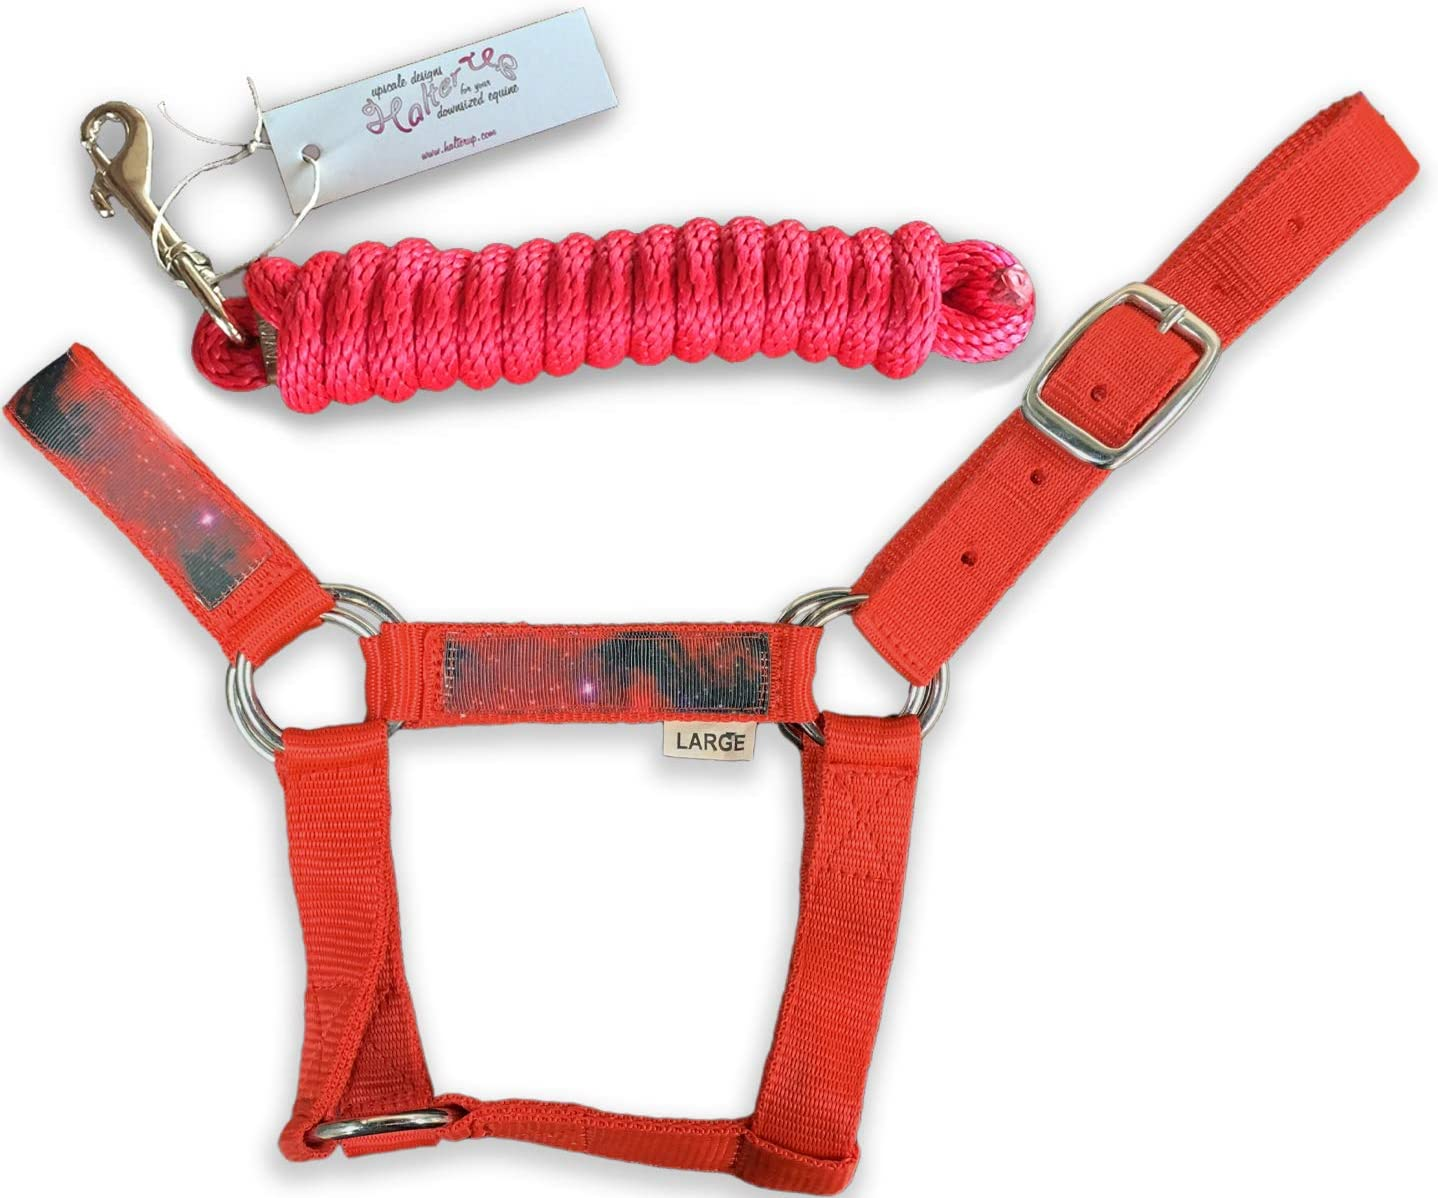 HalterUp New sales Miniature Price reduction Horse Halters and Lead bundle Ropes 2 item